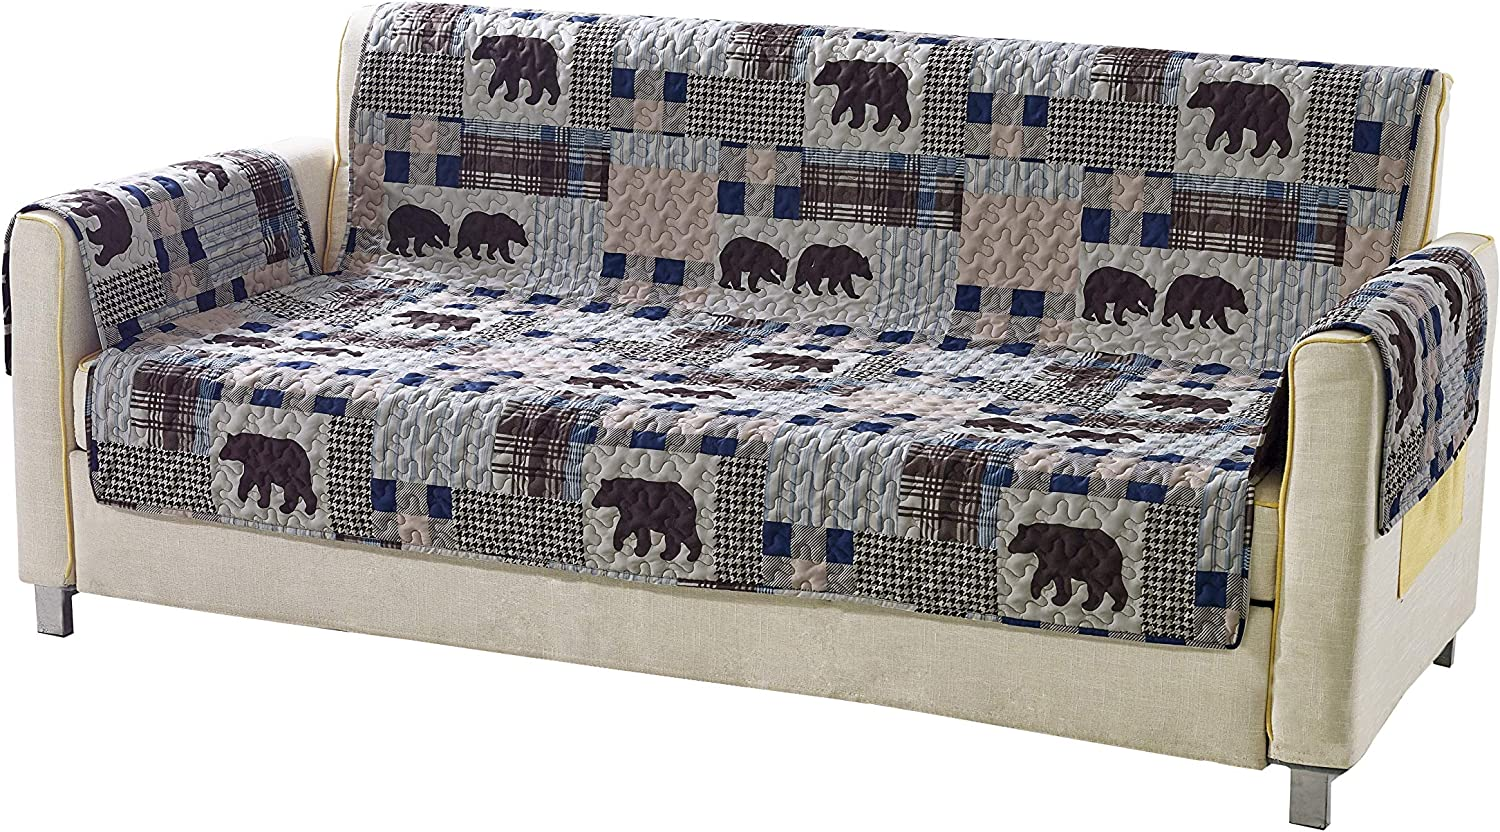 Rustic Modern Farmhouse Cabin Lodge Quilted Couch Sofa Loveseat Armchair Chair Recliner with Patchwork of Grizzly Bears and Buffalo Plaid Check Houndstooth Patterns Beige Blue - Western 2 (Chair)